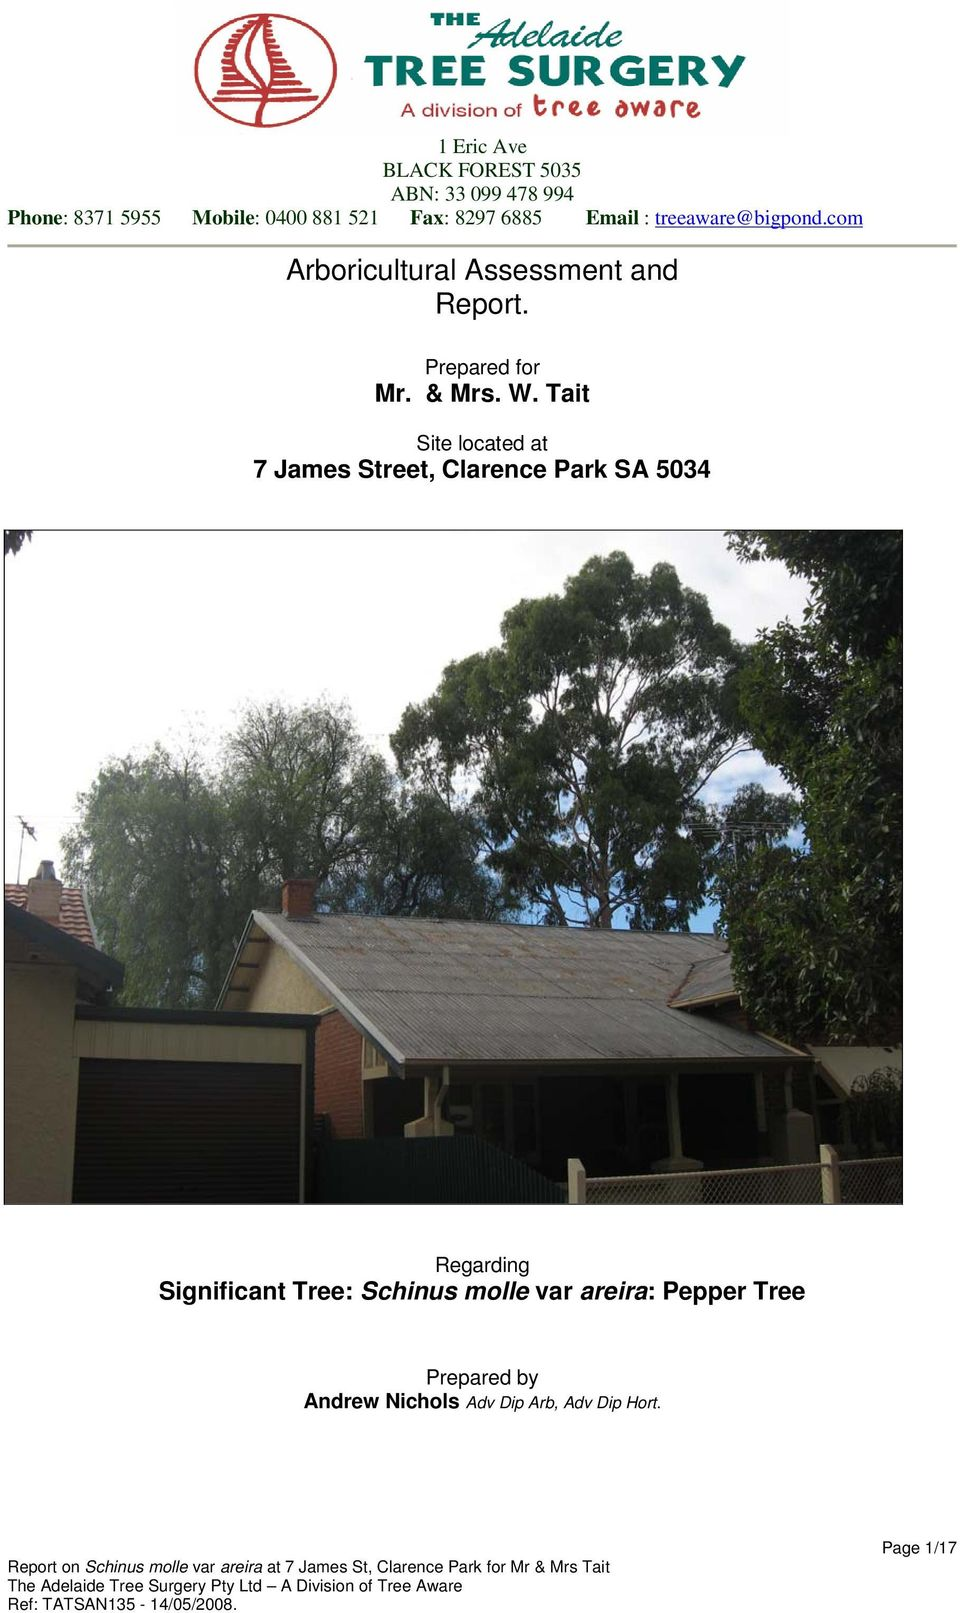 W. Tait Site located at 7 James Street, Clarence Park SA 5034 Regarding Significant Tree: